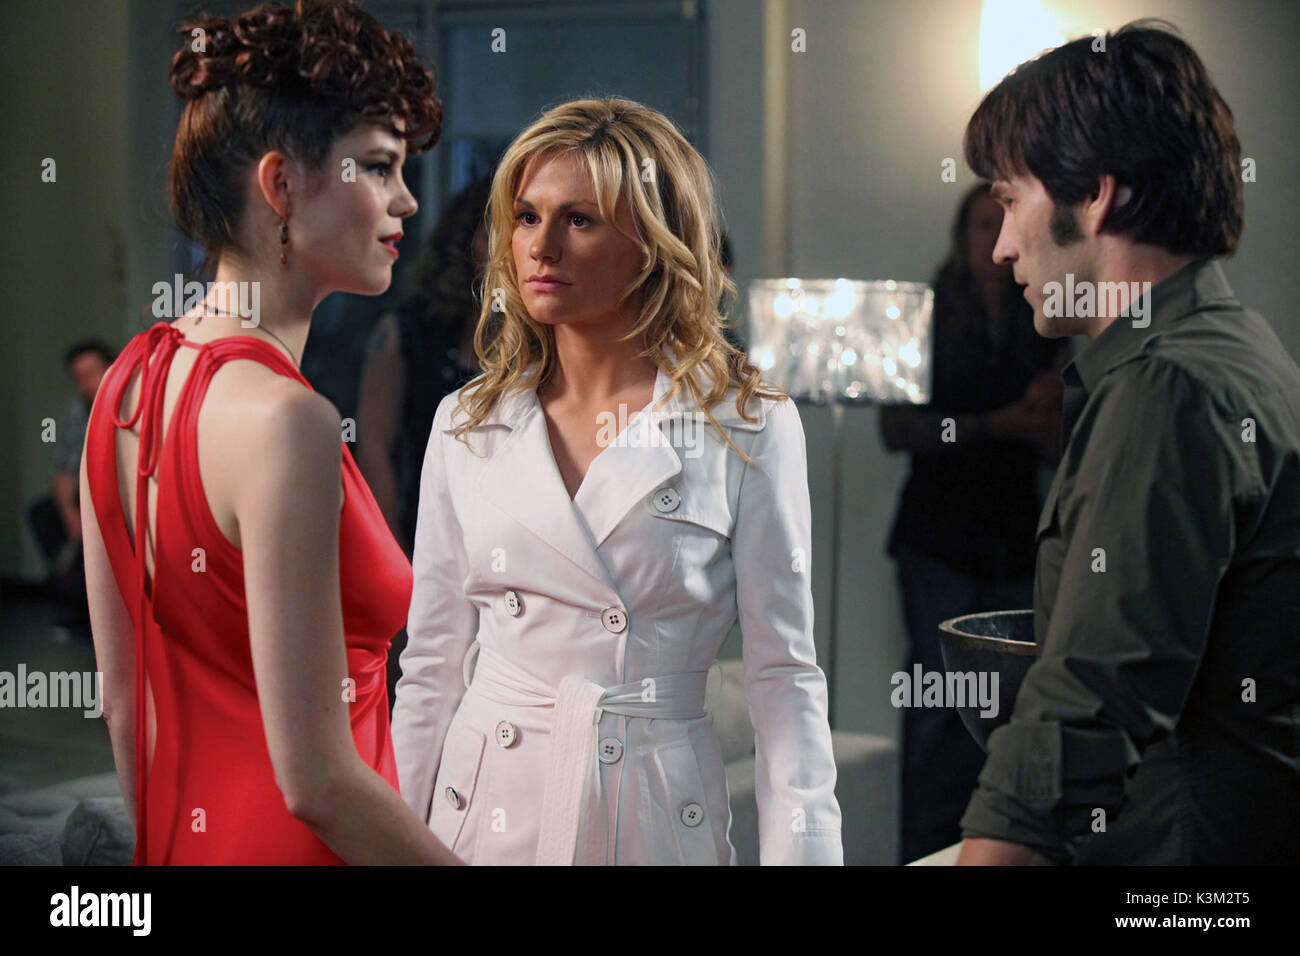 TRUE BLOOD Series,2 / Episode,8 / Timebomb MARIANA KLEWENO as Lorena, STEPHEN MOYER as BIll Compton, ANNA PAQUIN - Stock Image